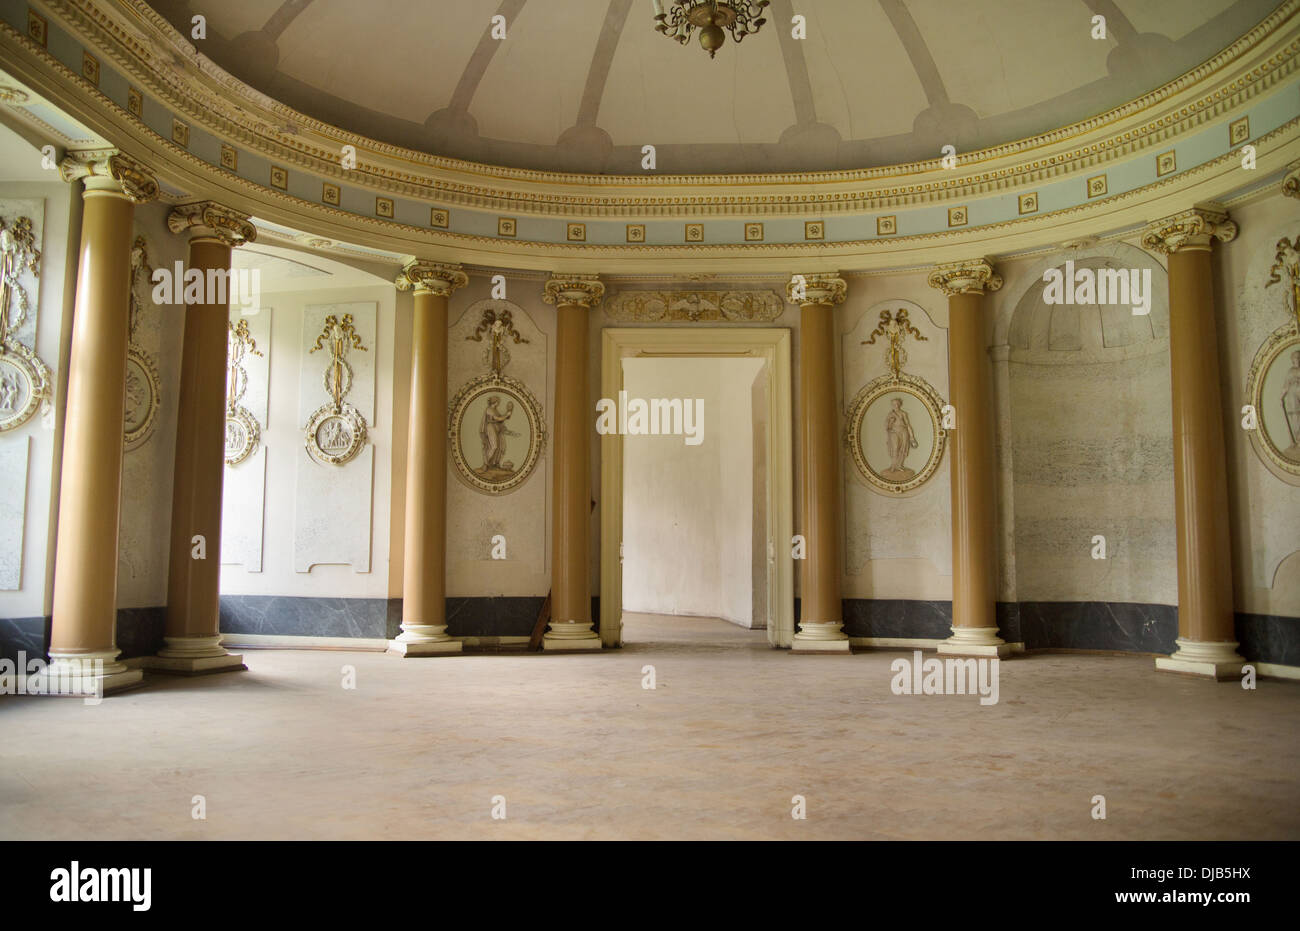 Nice photo of the ancient bright interior - Stock Image